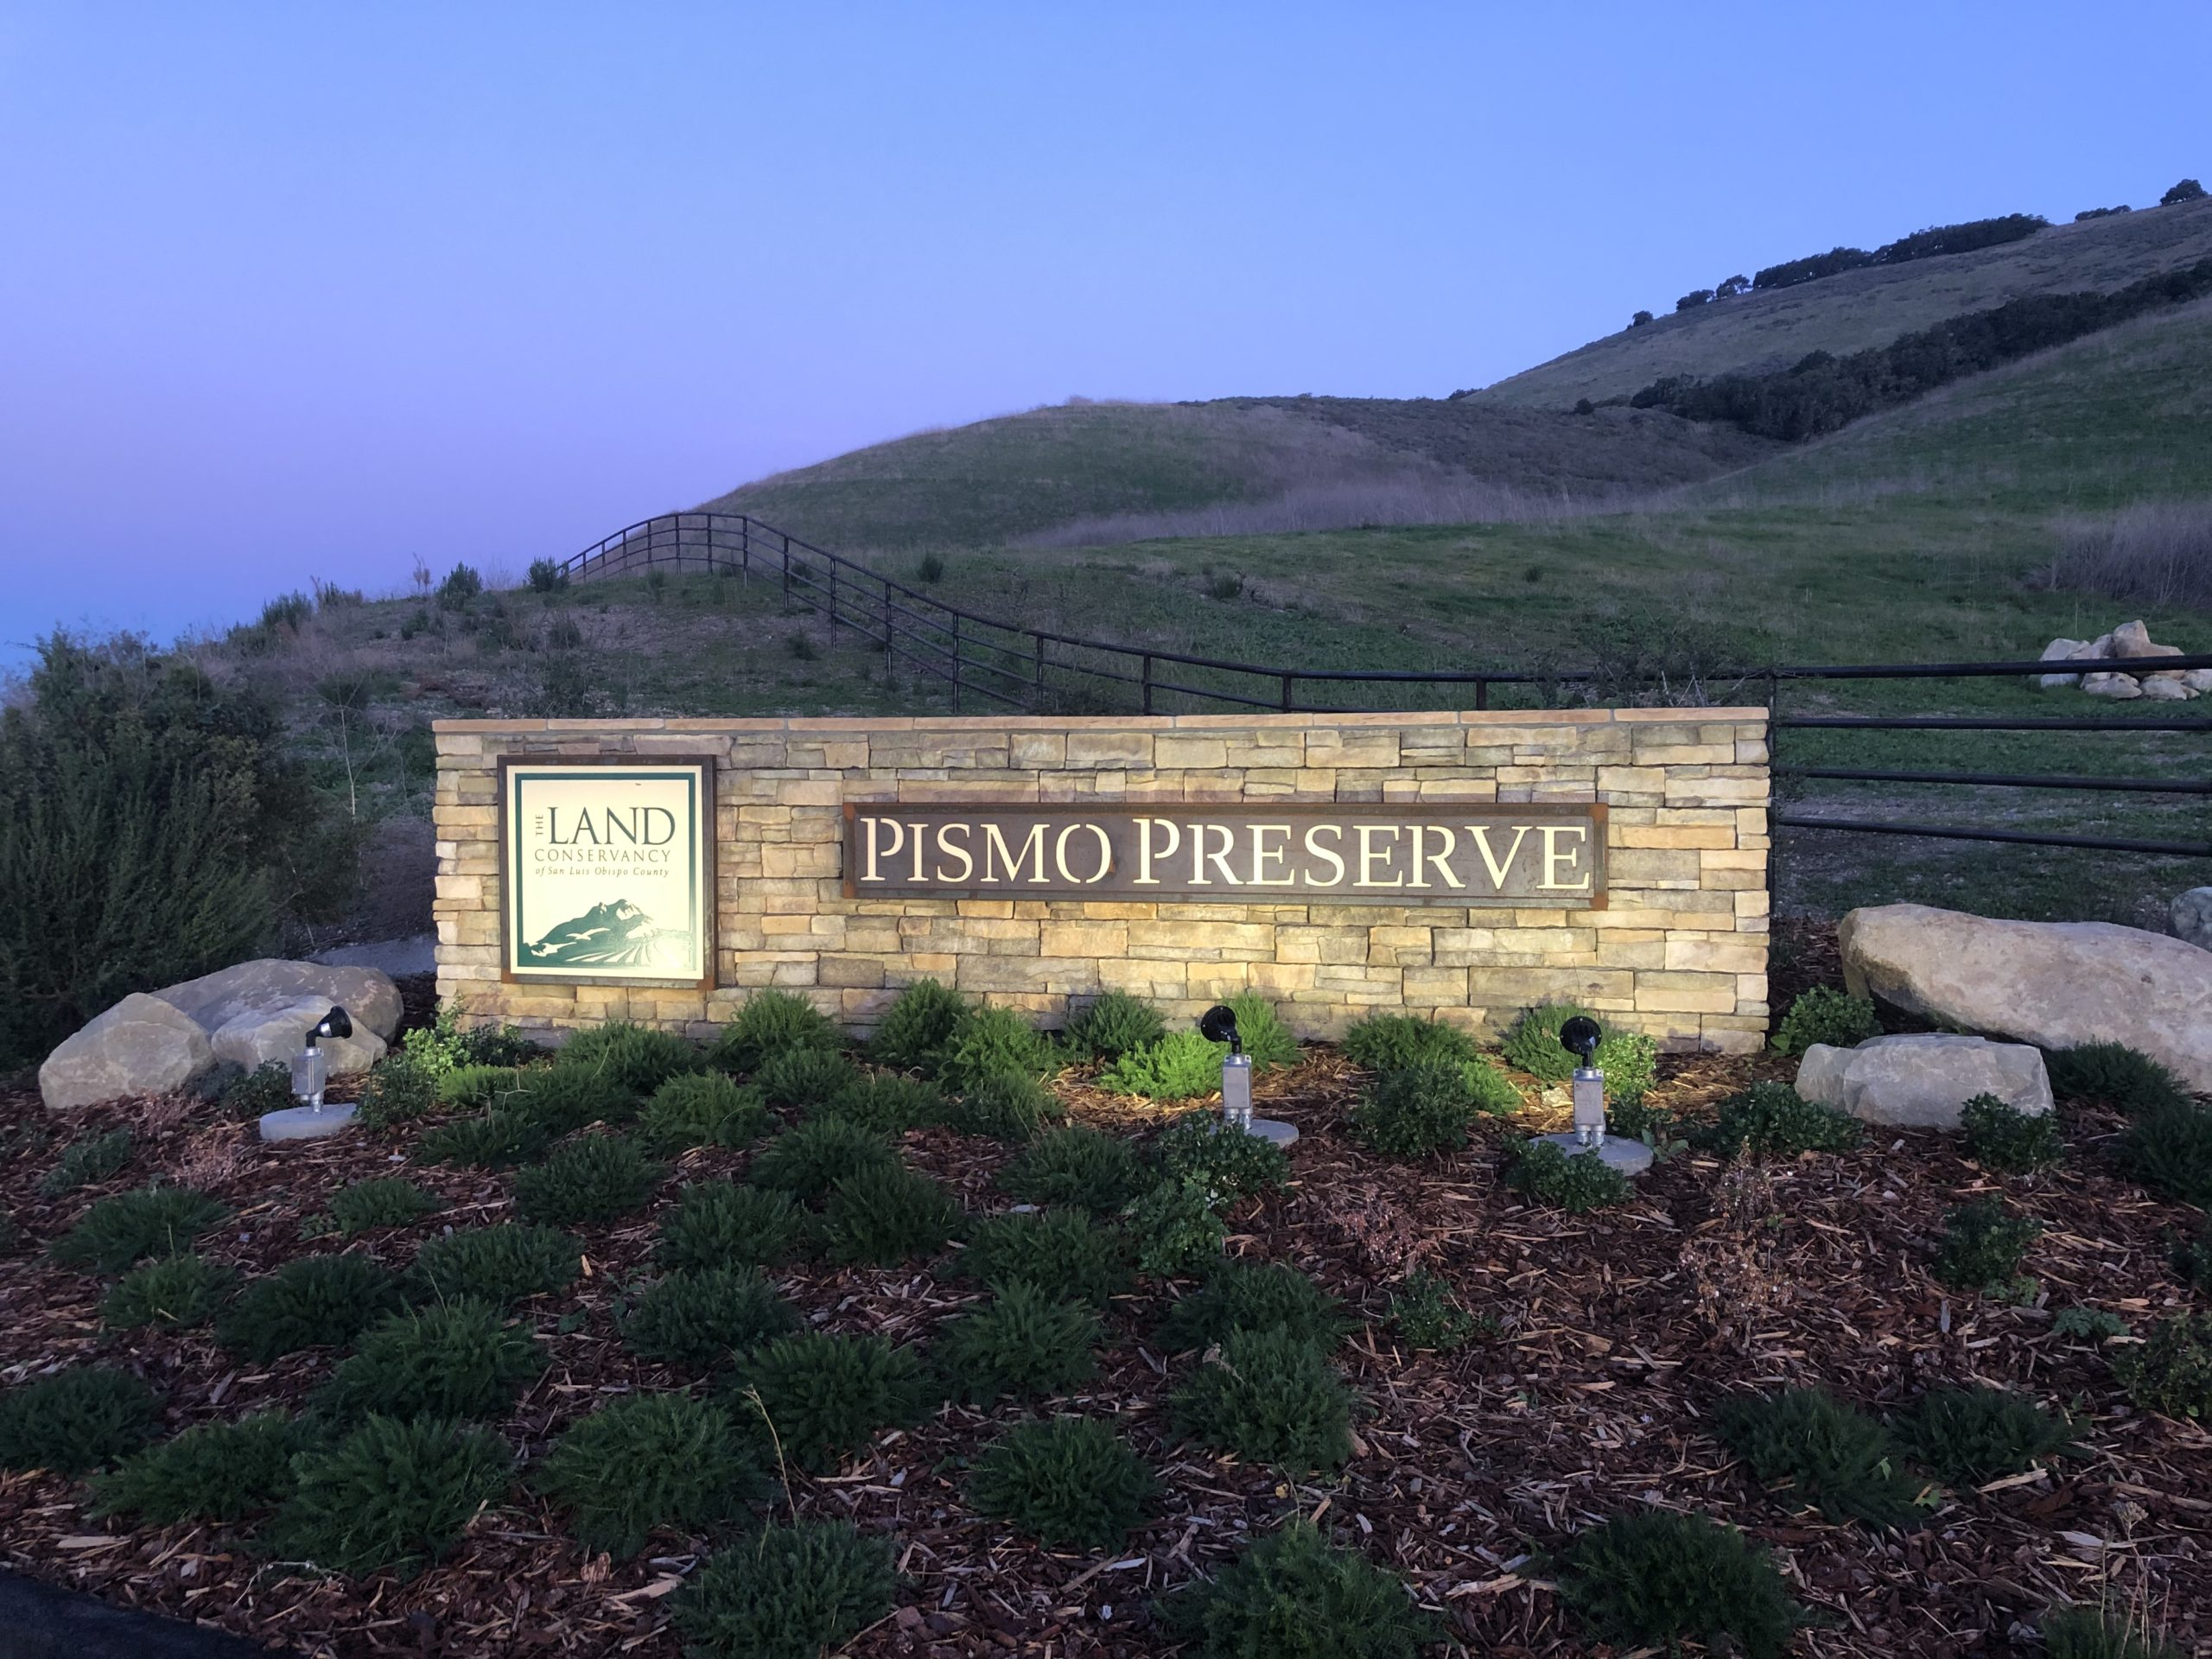 The Land Conservancy's Pismo Preserve Featured in PBS Docuseries